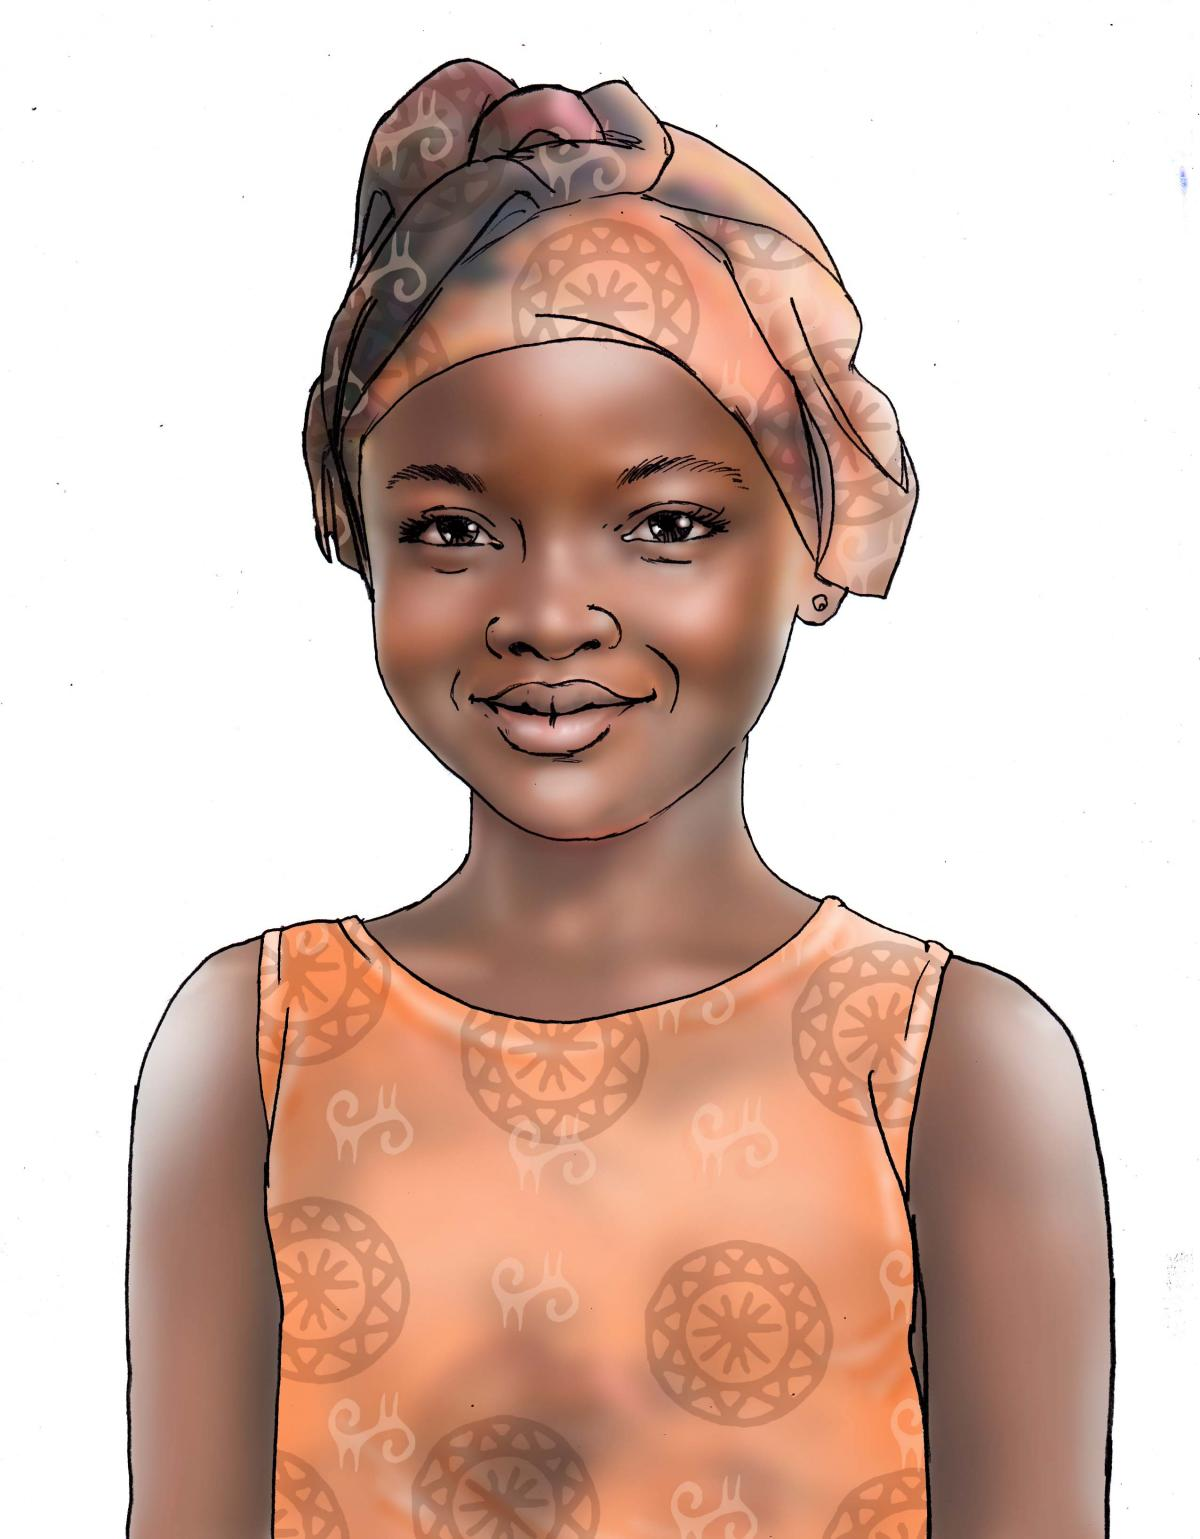 People - Young girl - 00 - Niger